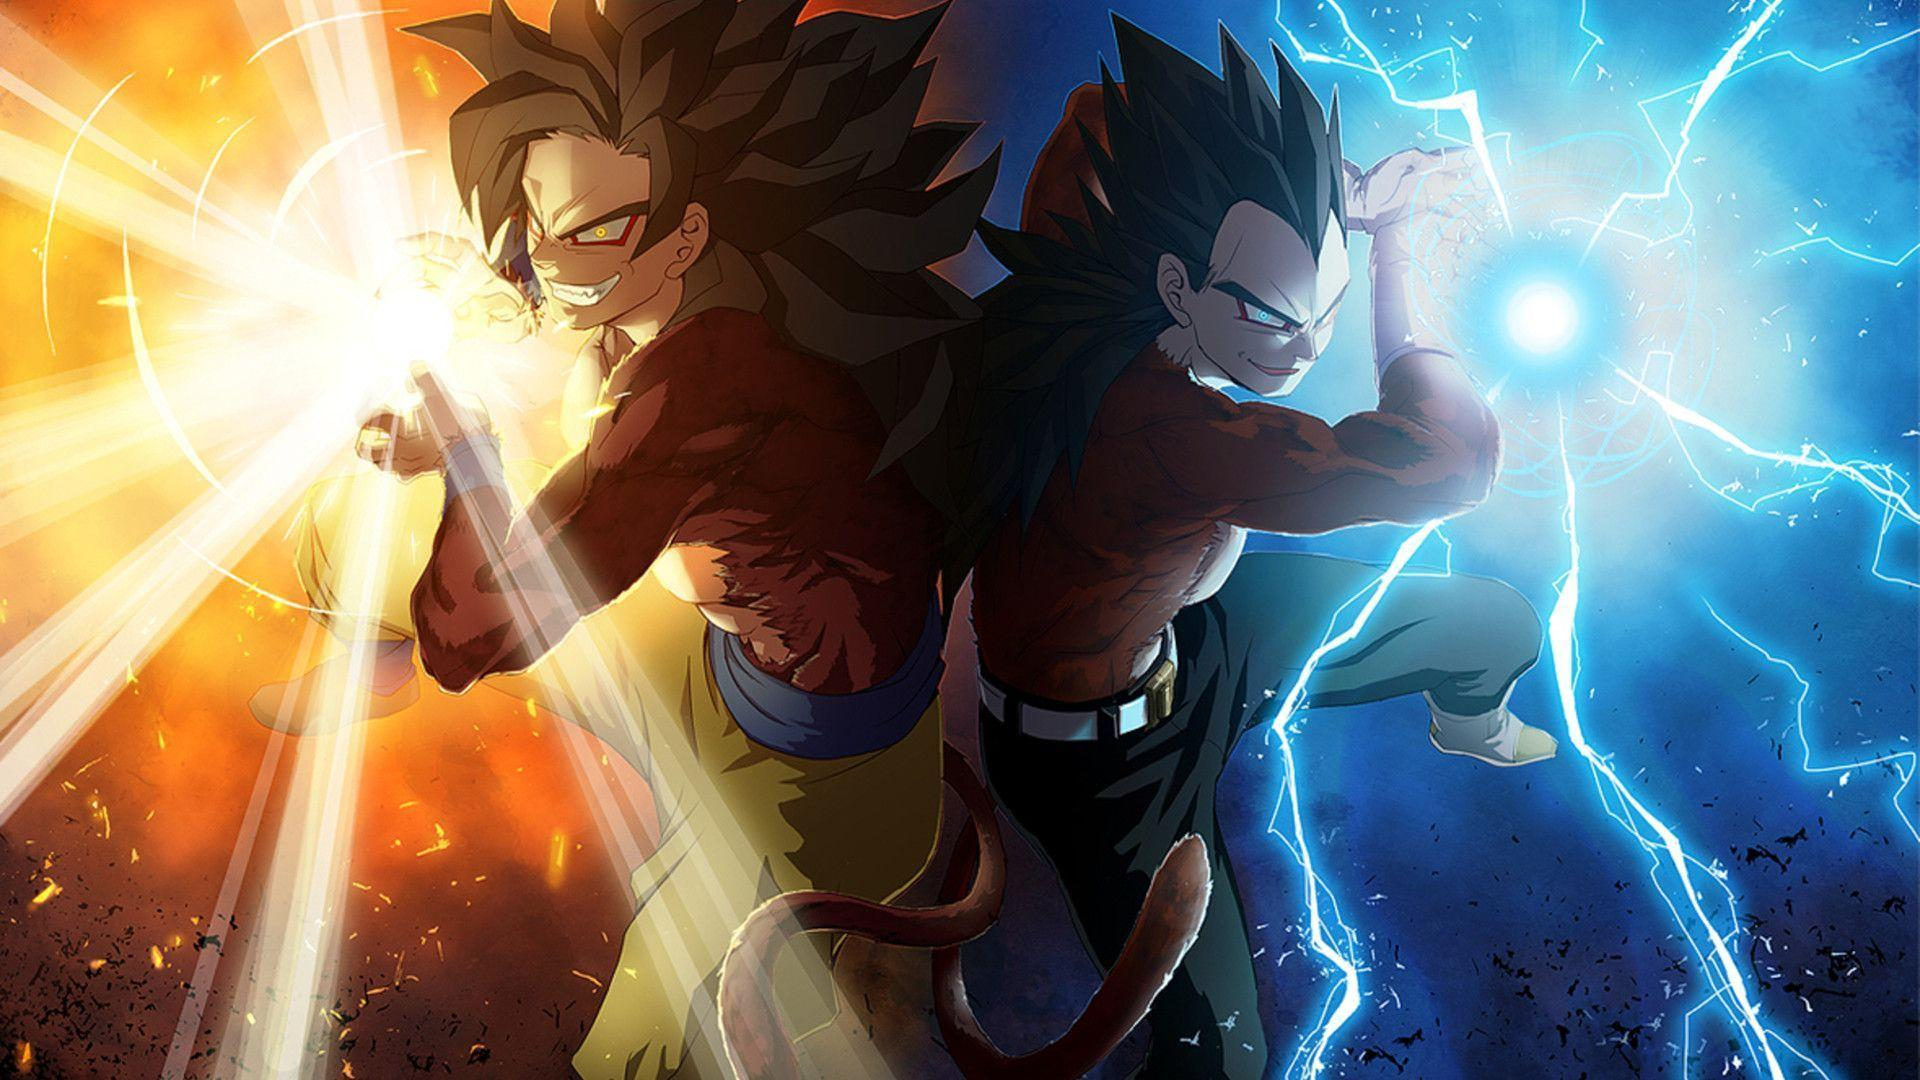 Goku & Vageta* - Dragon Ball Z Wallpaper (35525624) - Fanpop